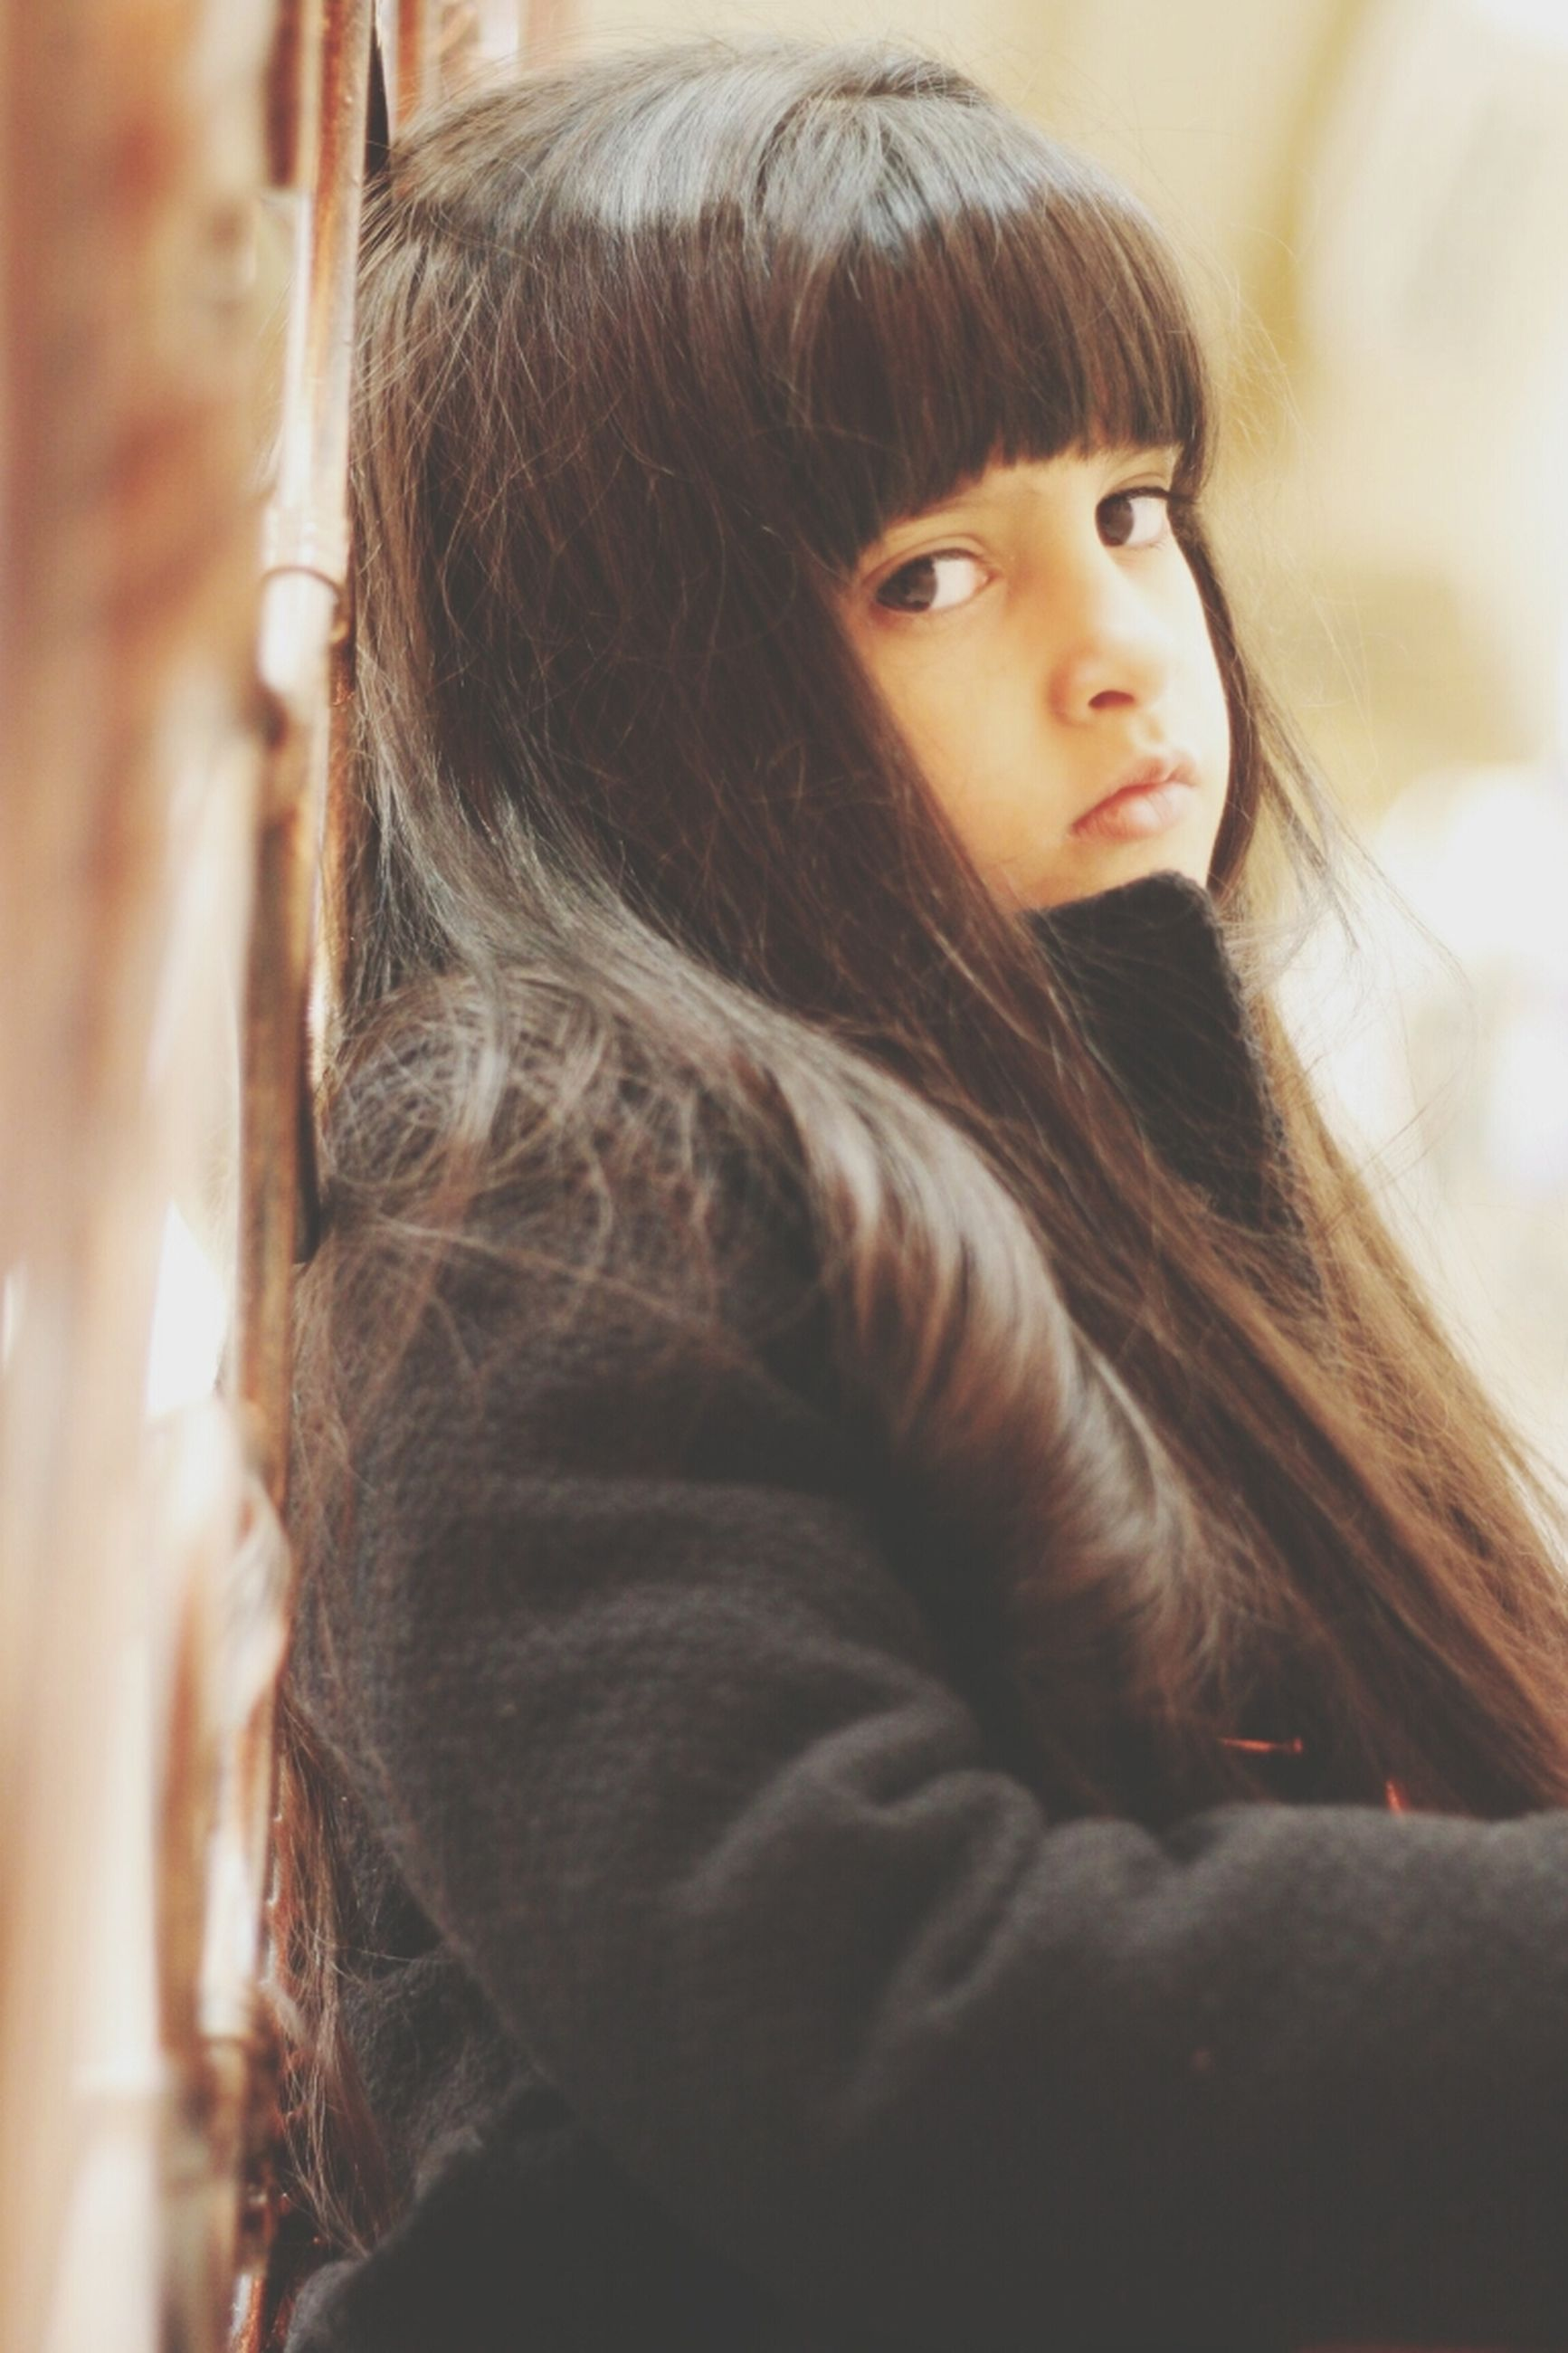 long hair, young women, lifestyles, young adult, person, headshot, leisure activity, brown hair, indoors, black hair, focus on foreground, casual clothing, blond hair, medium-length hair, front view, portrait, looking at camera